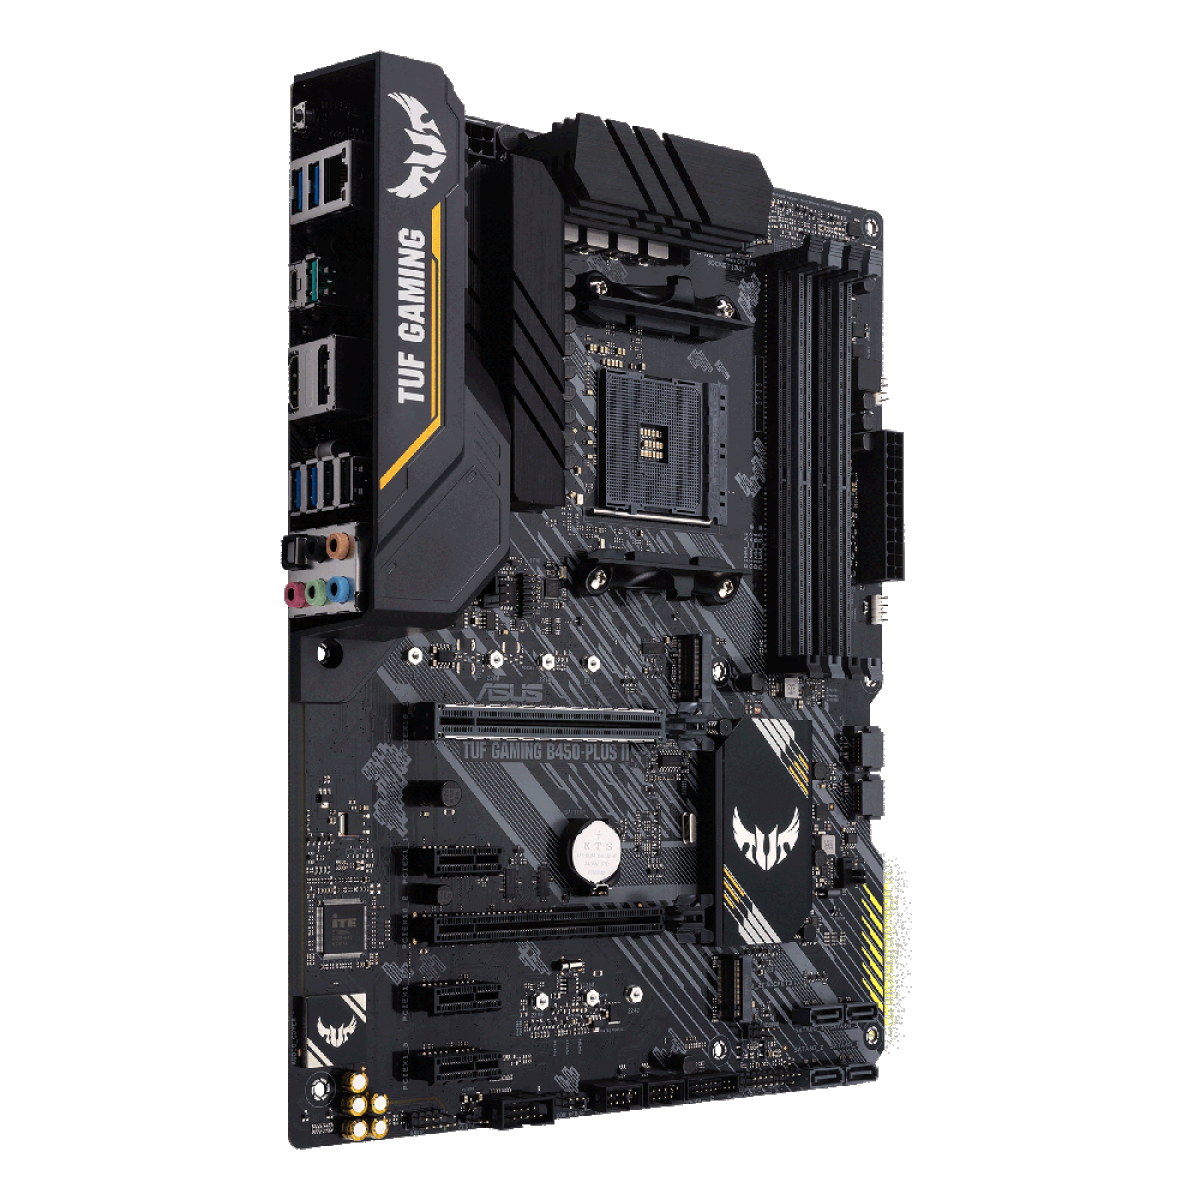 Placa Mãe Asus TUF Gaming B450-Plus II, Chipset B450, AMD AM4, ATX, DDR4, 90MB1650-M0EAY0